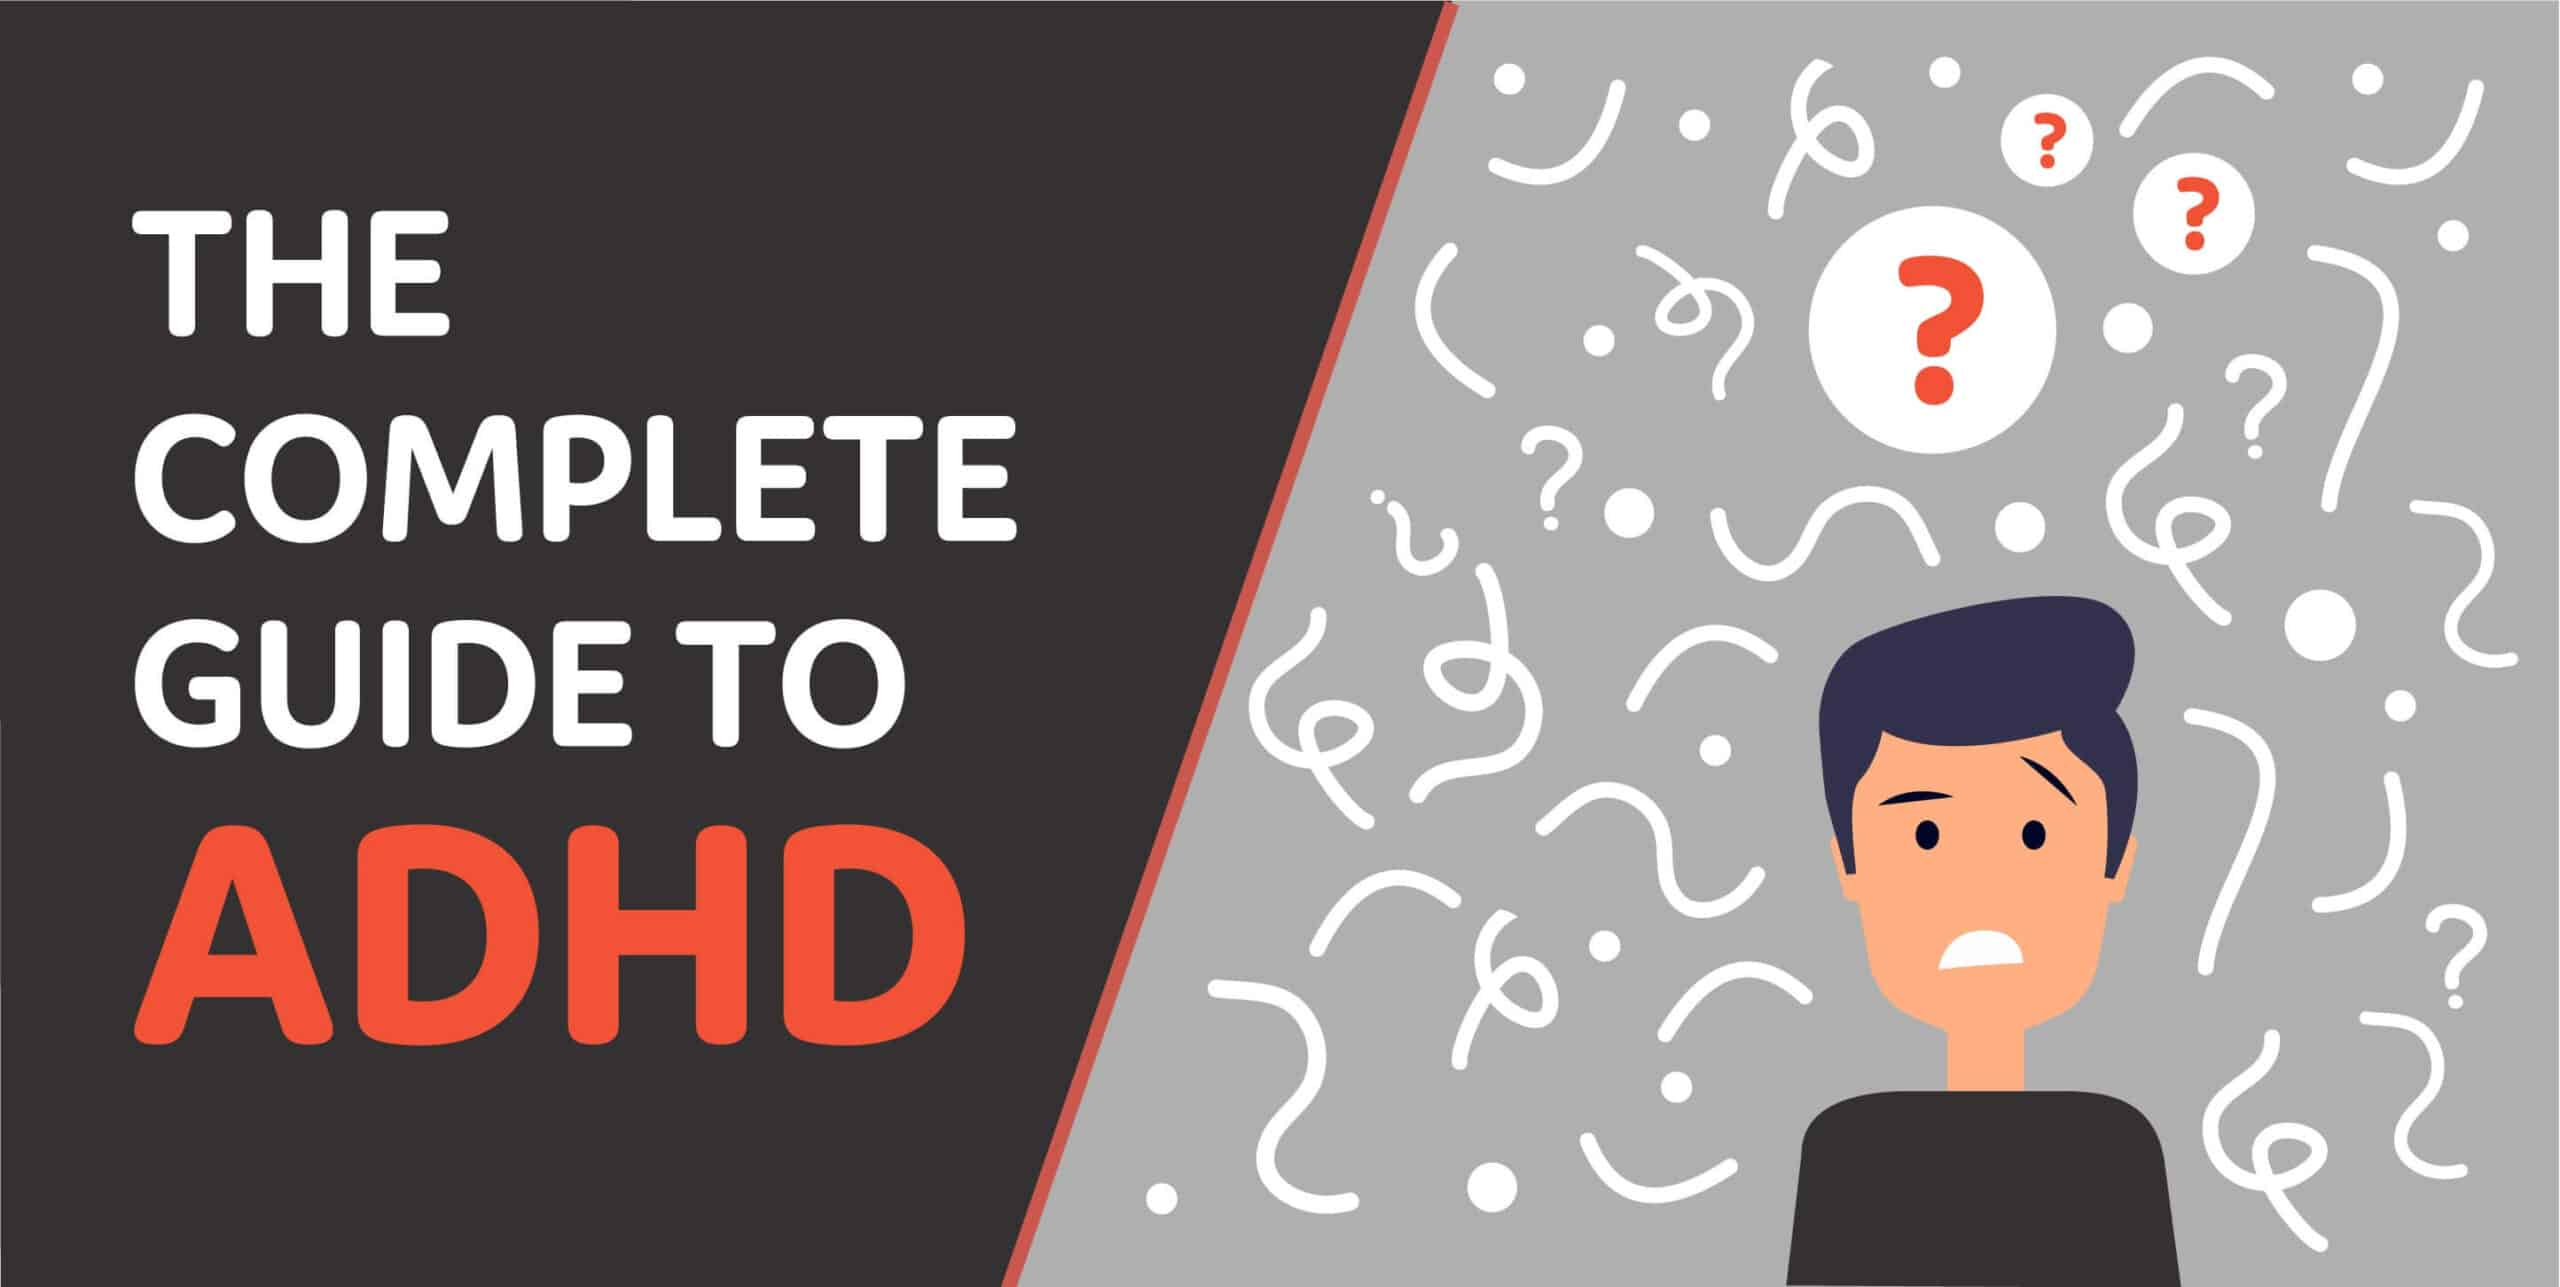 adhd guide for parents